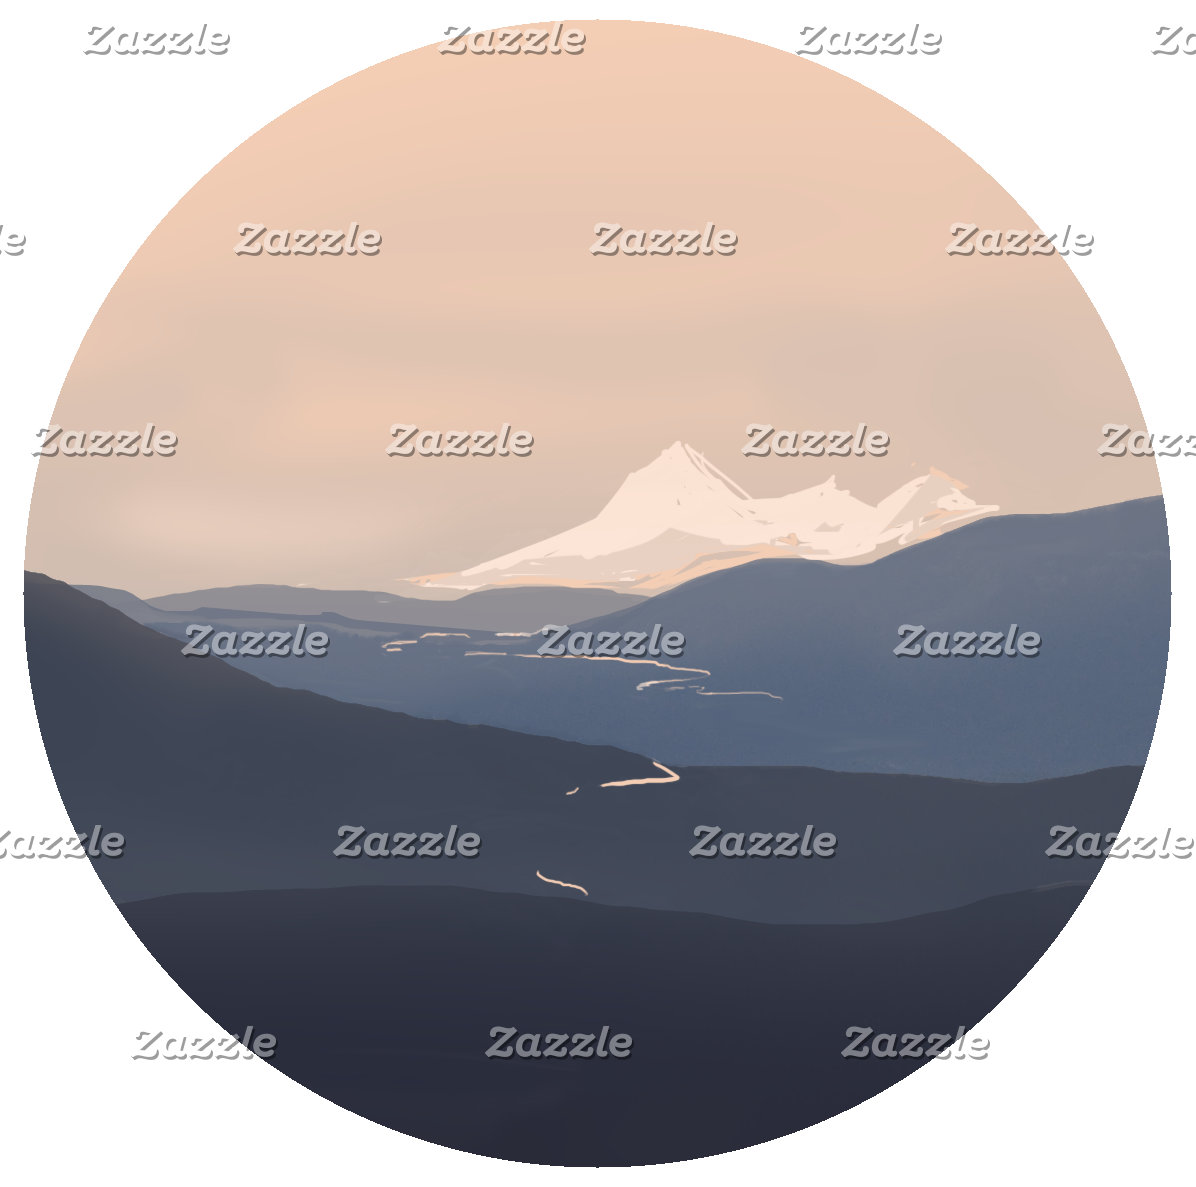 Round Illustrations: Mountains